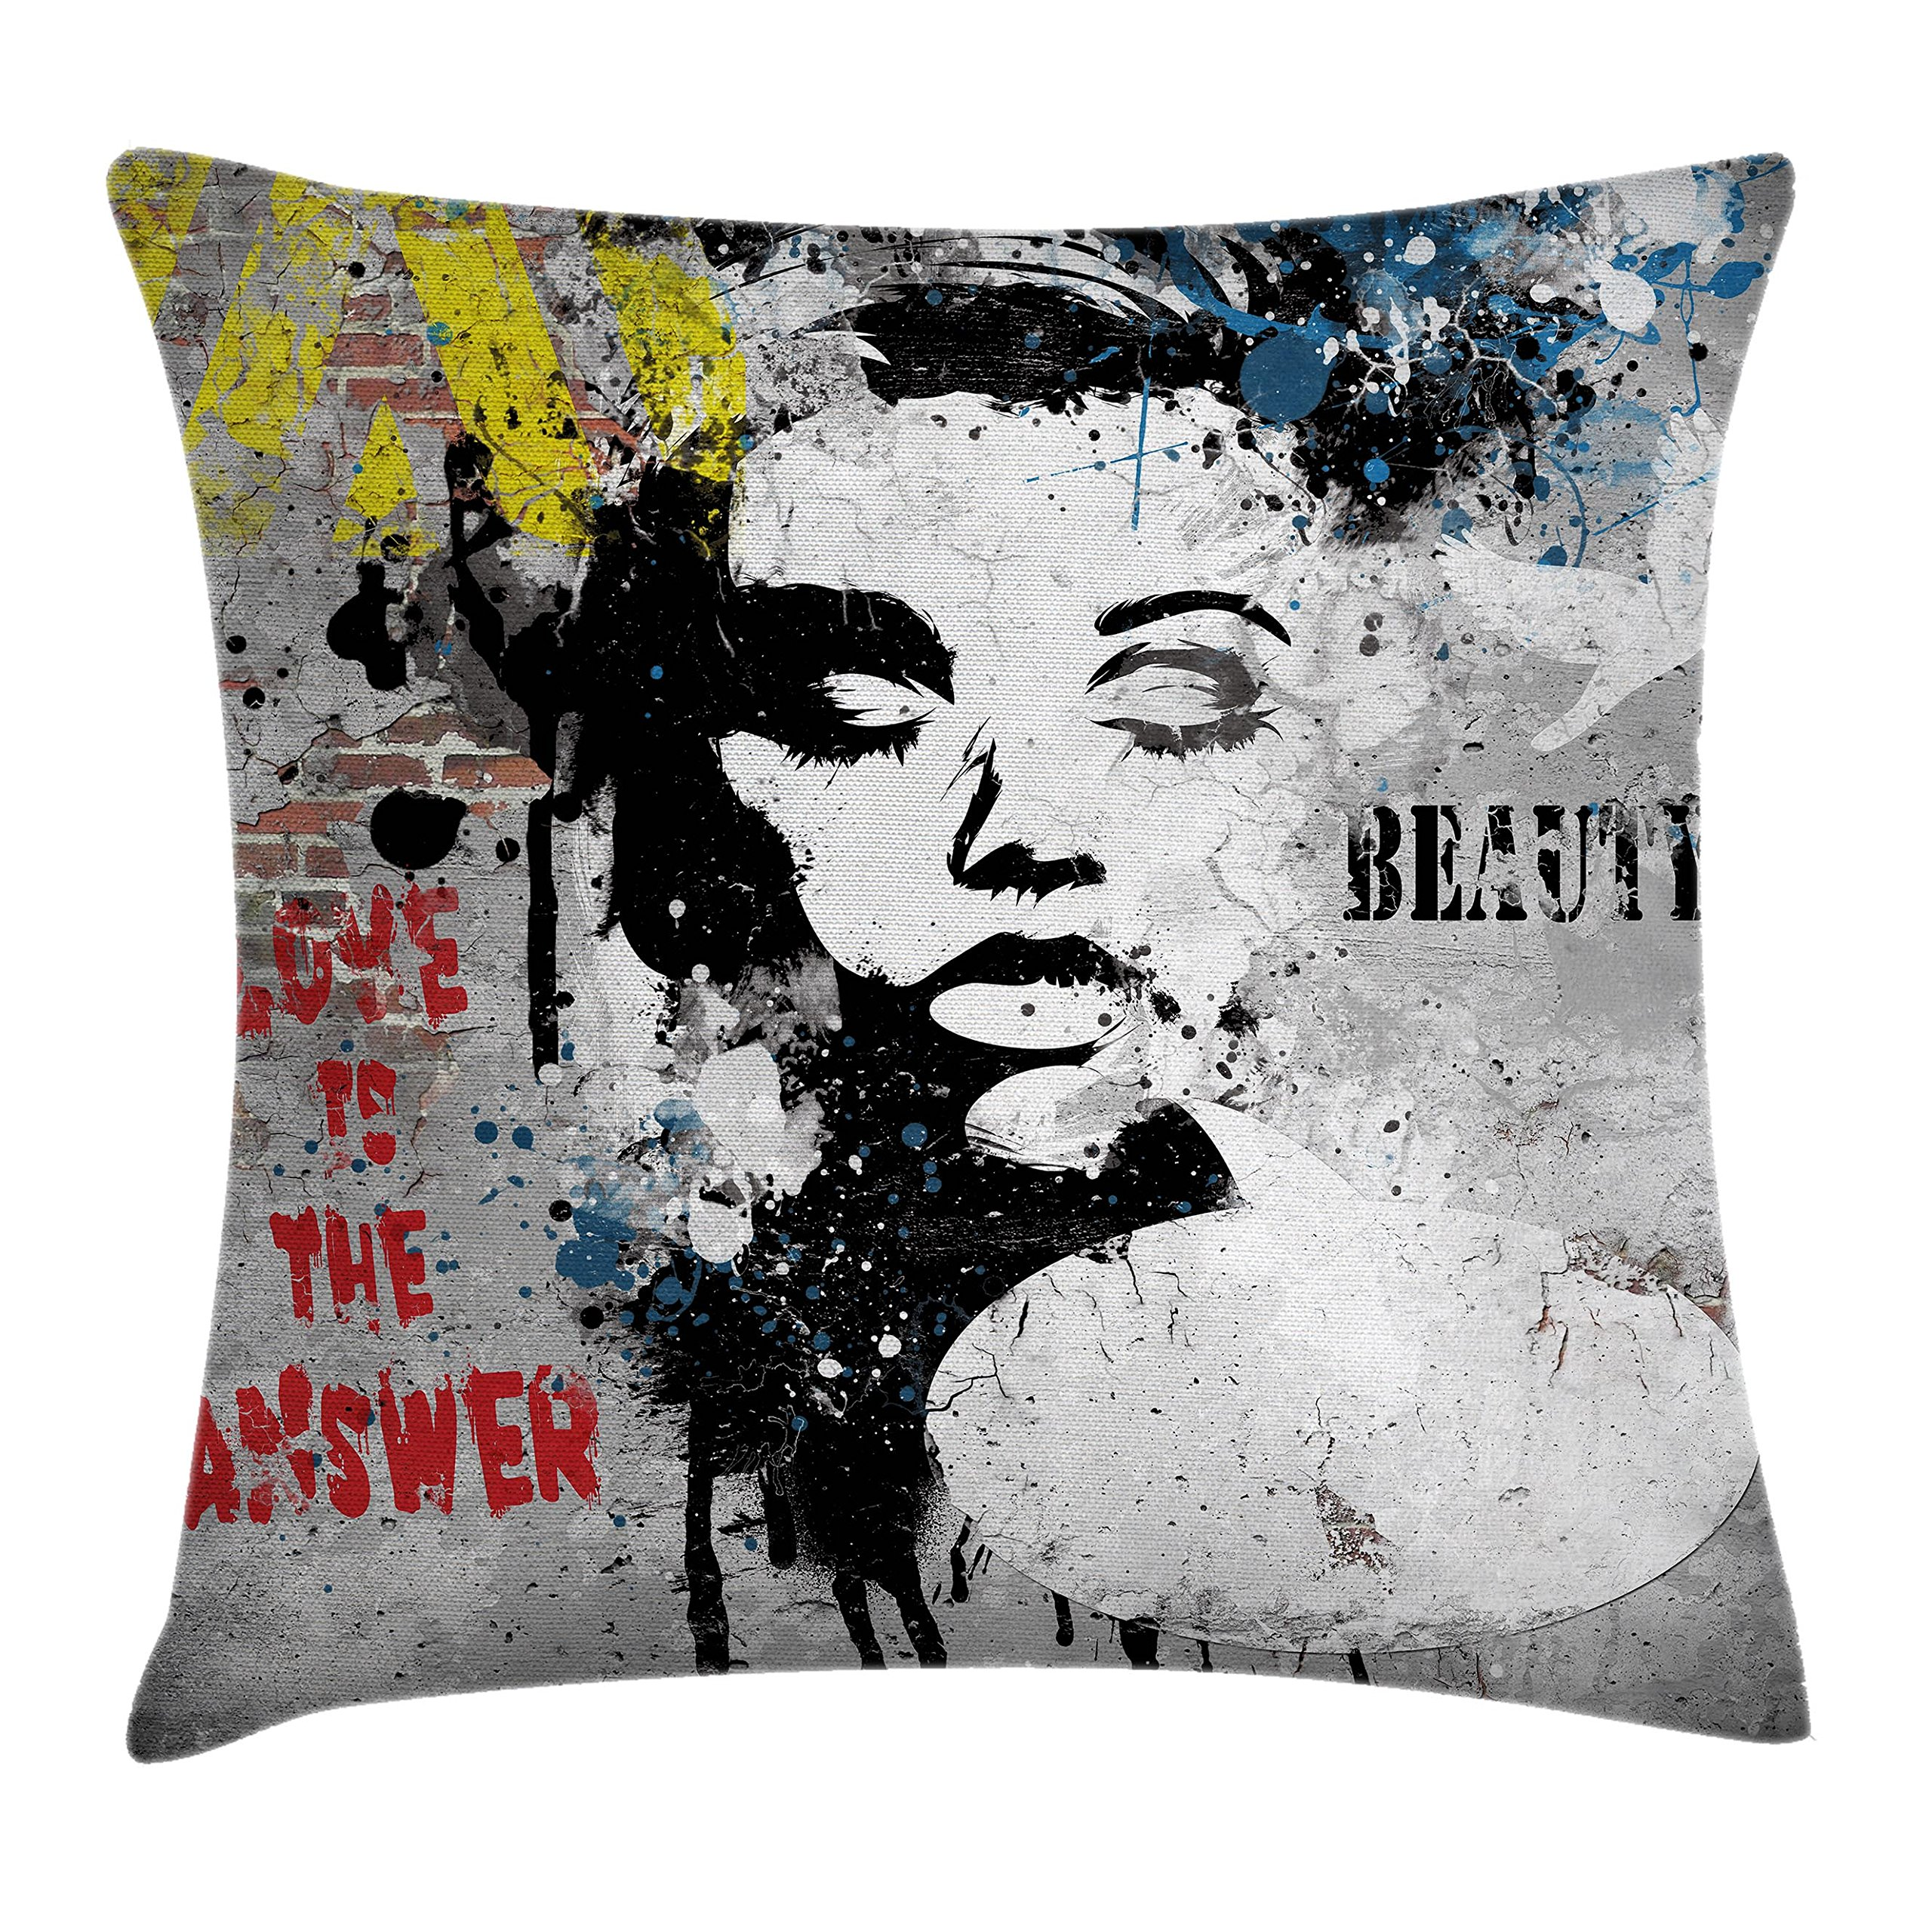 Ambesonne Graffiti Decor Throw Pillow Cushion Cover by, Modern Grunge Wall with a Girl and Quotes Casual Youth Urban Fashion Print, Decorative Square Accent Pillow Case, 24 X 24 Inches, Grey Yellow